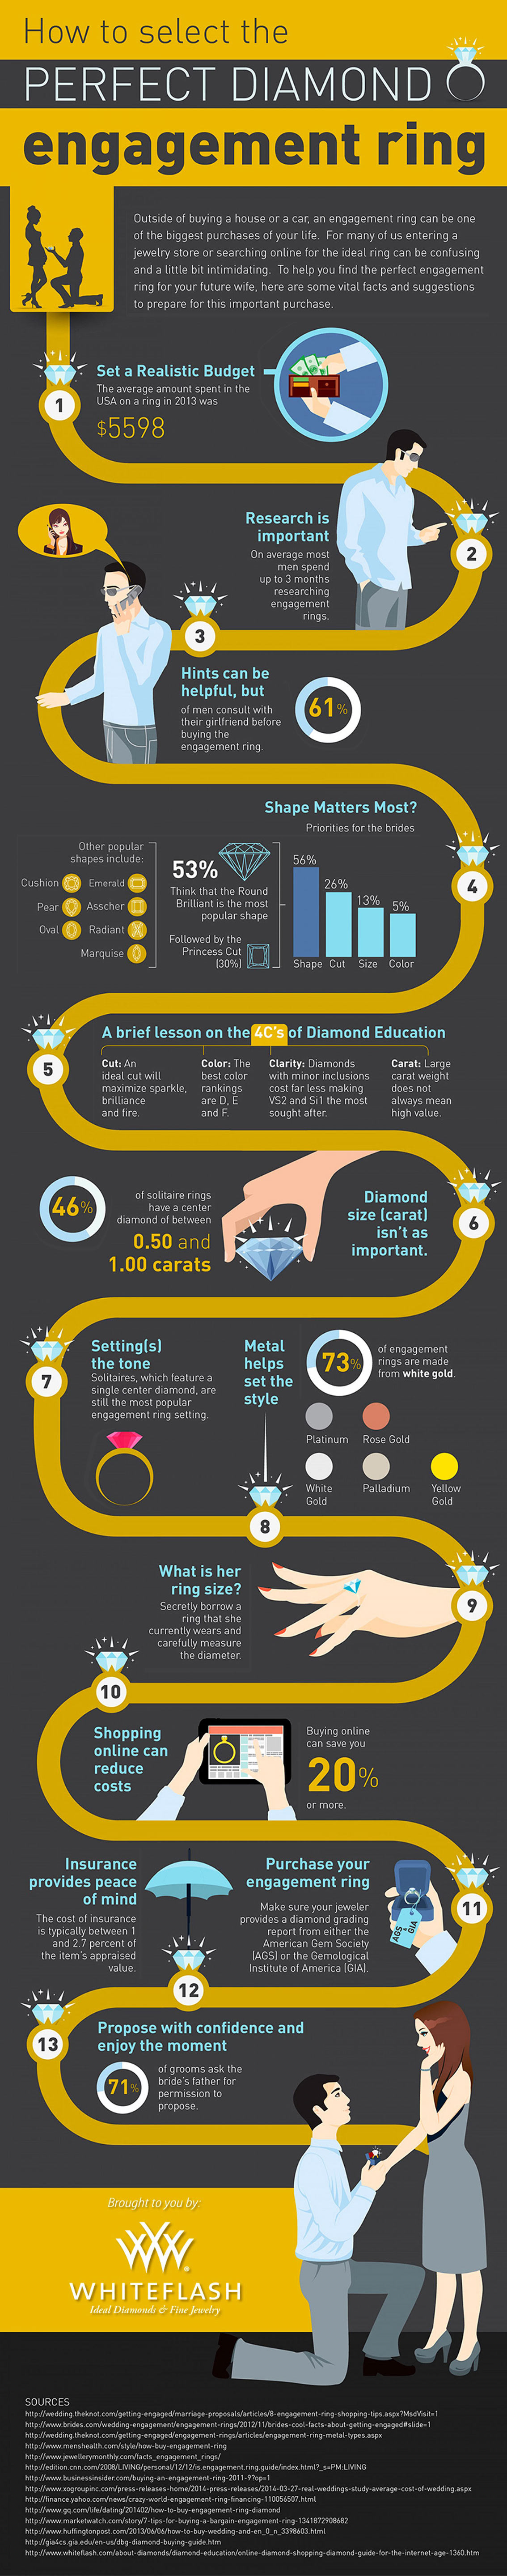 Mens Guide to Buying Diamond Engagement Ring Infographic